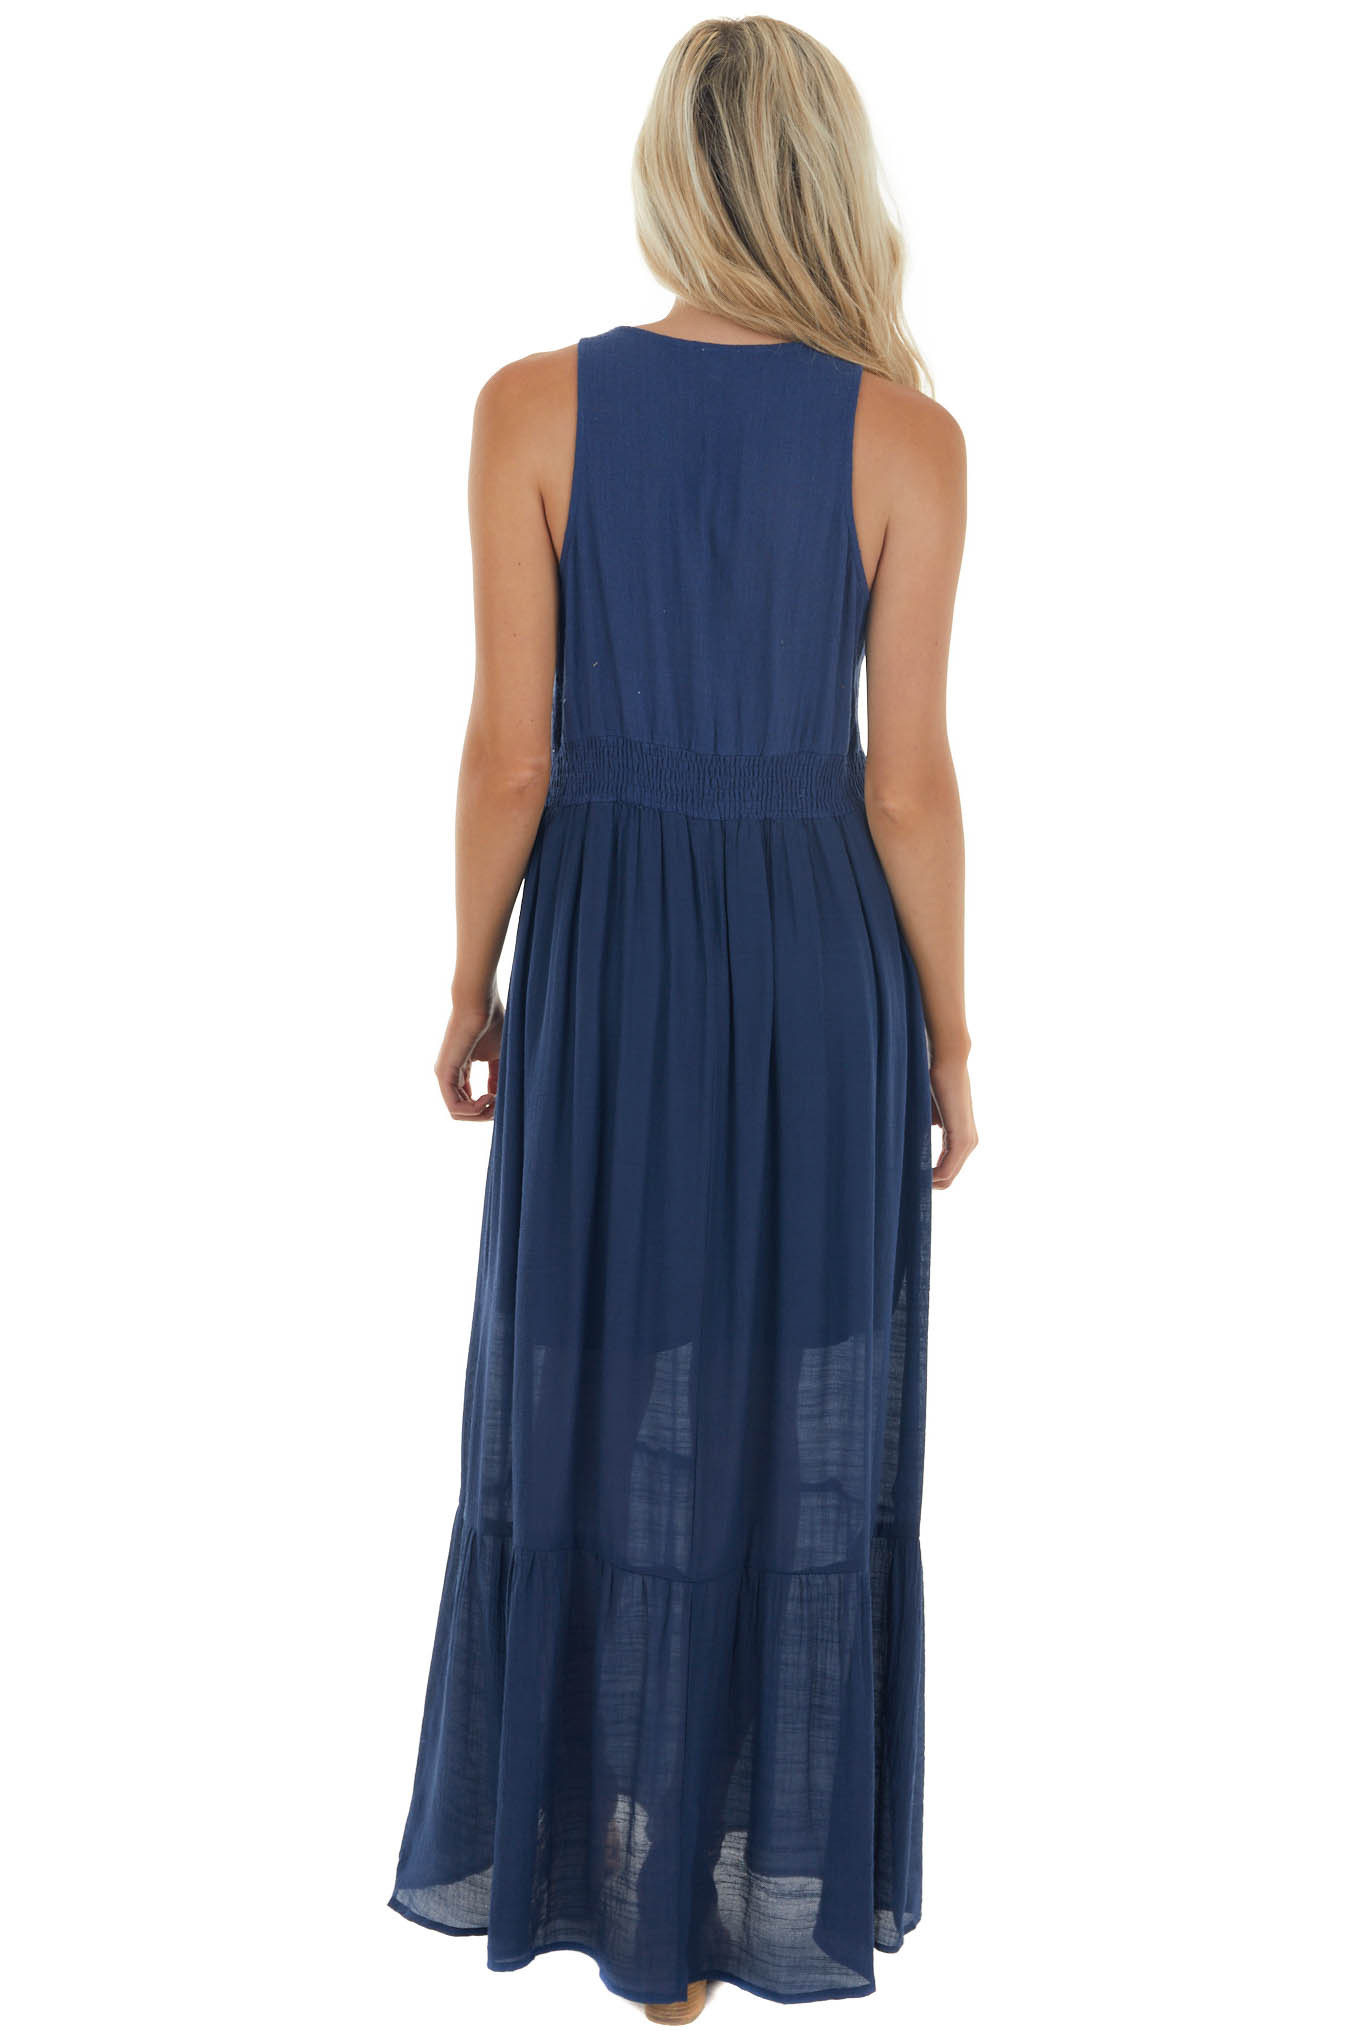 Navy Floral Embroidered Sleeveless Maxi Dress